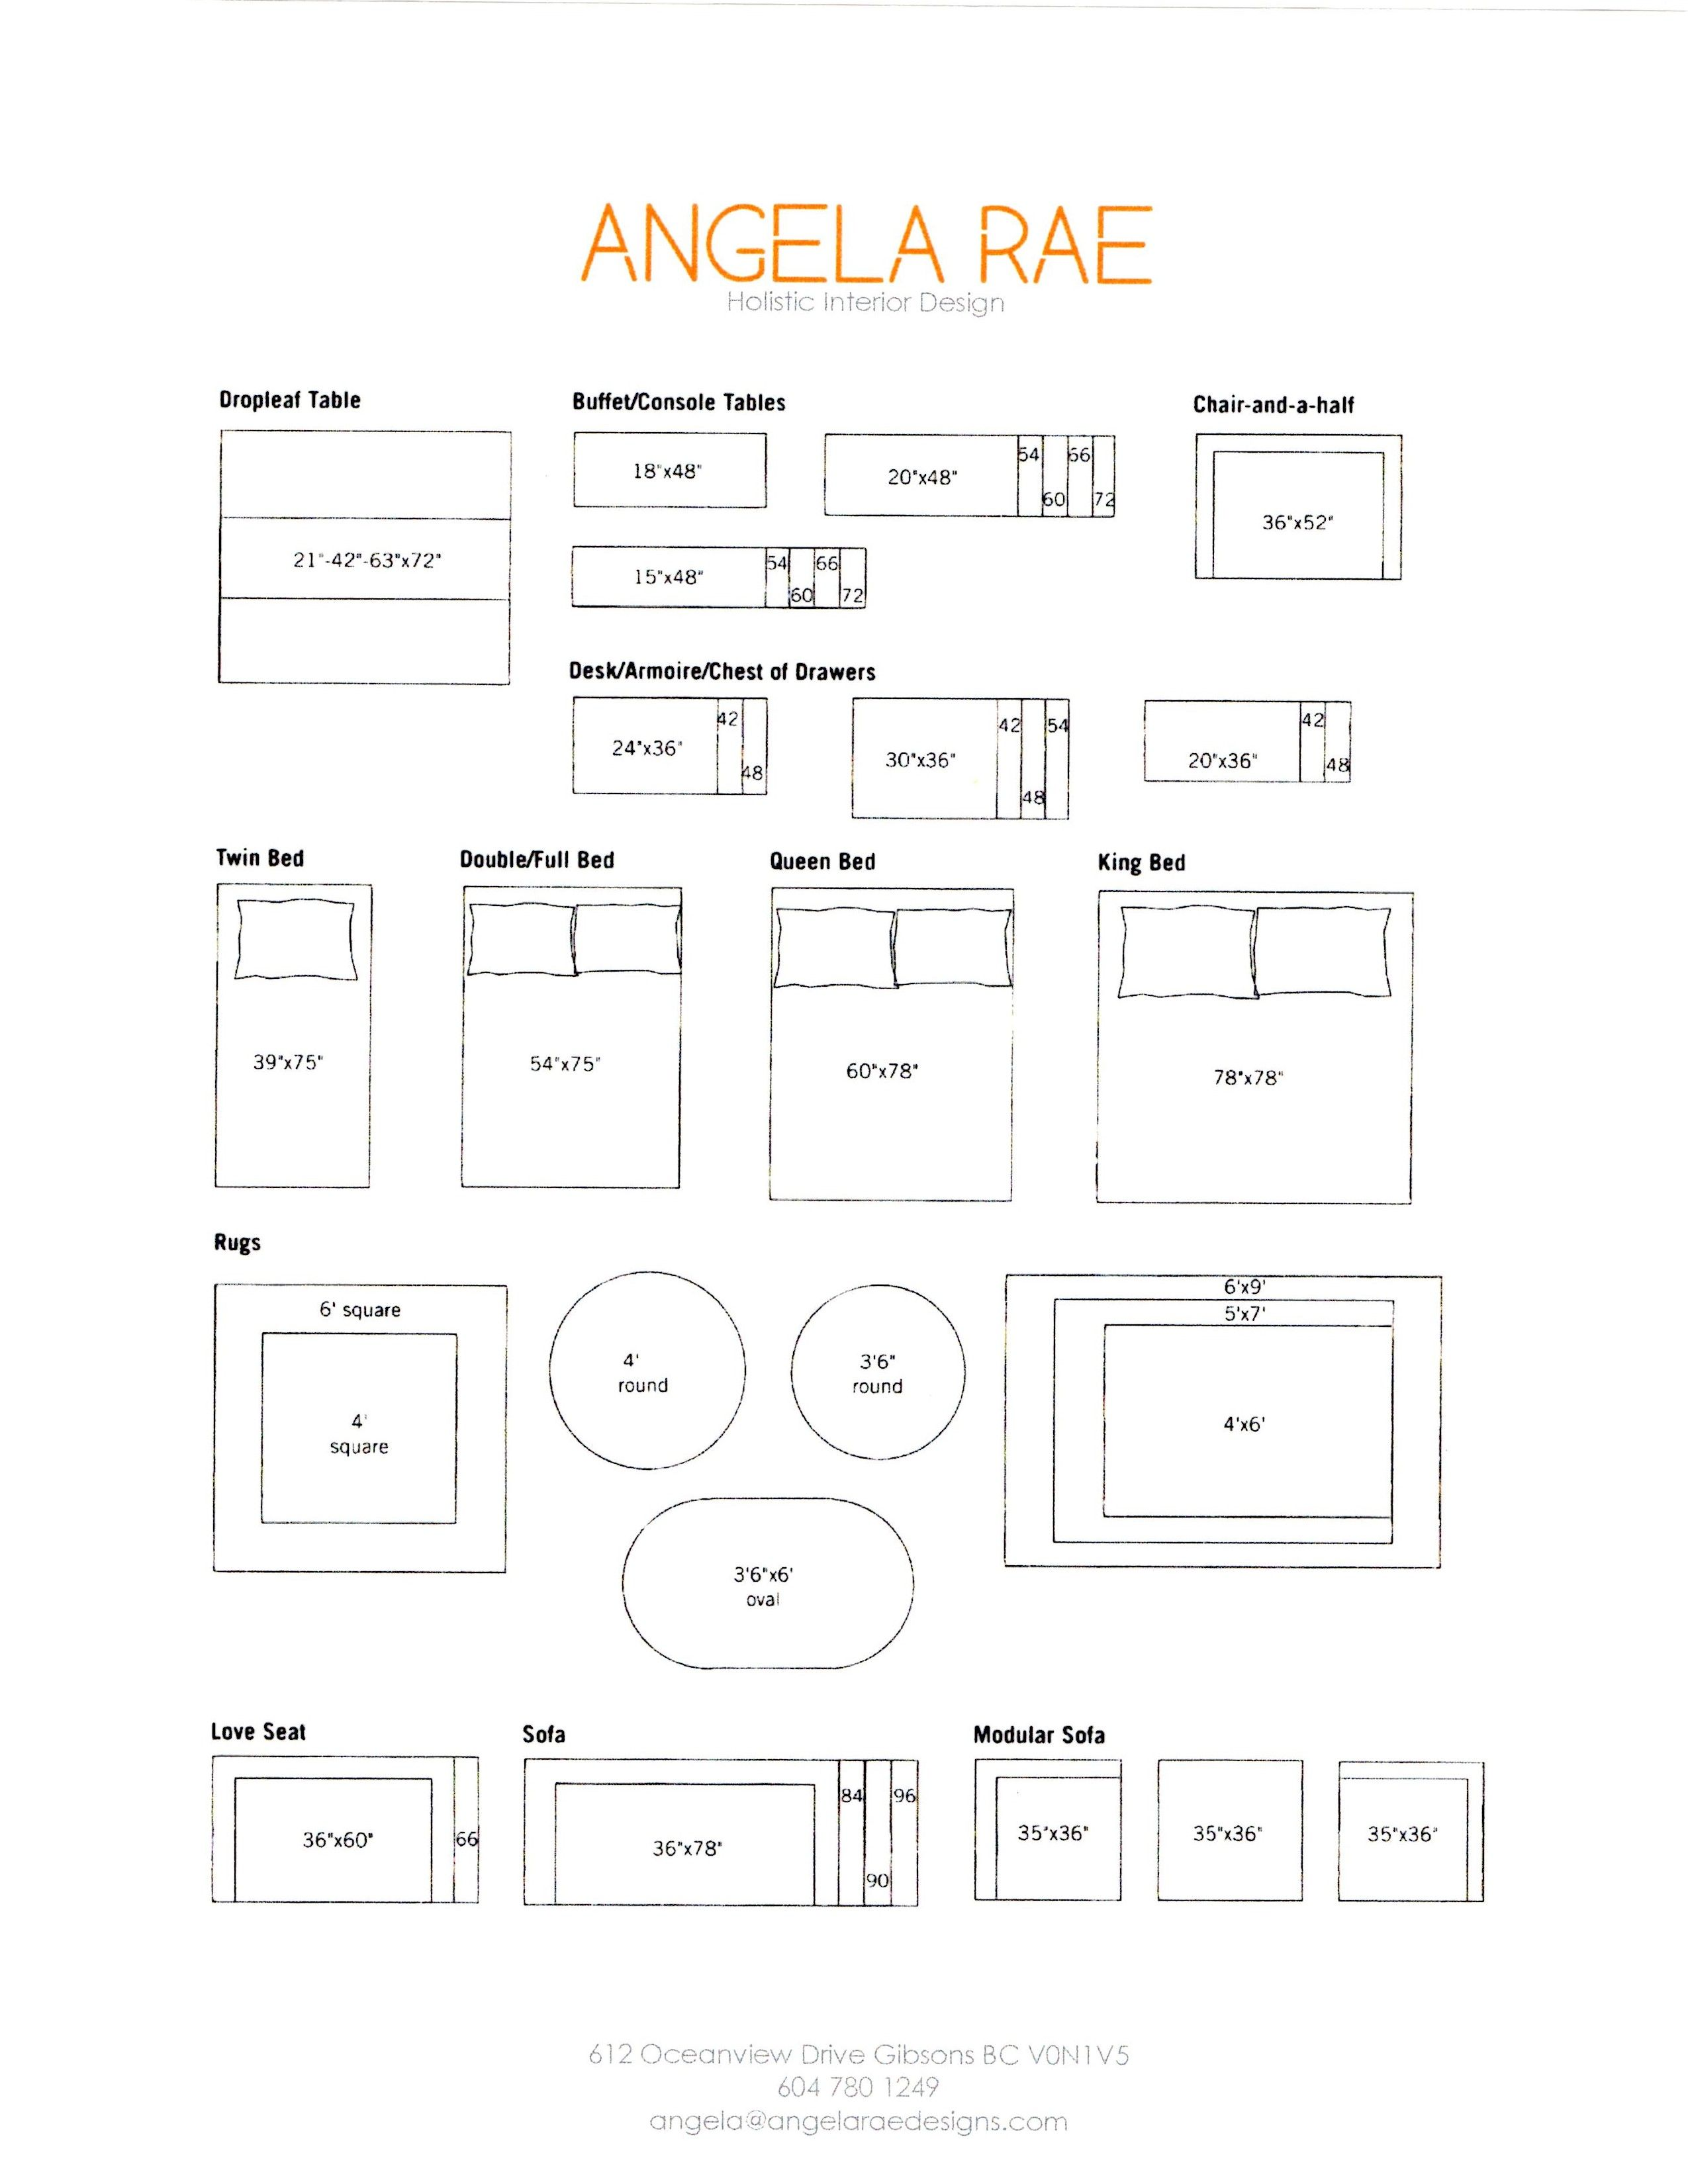 More Printable Furniture At 1 4 Scale Have Fun Here S A Tip Don T Know What Length Sofa Is Goin Interior Design Guide Carport Designs Floor Plan Symbols